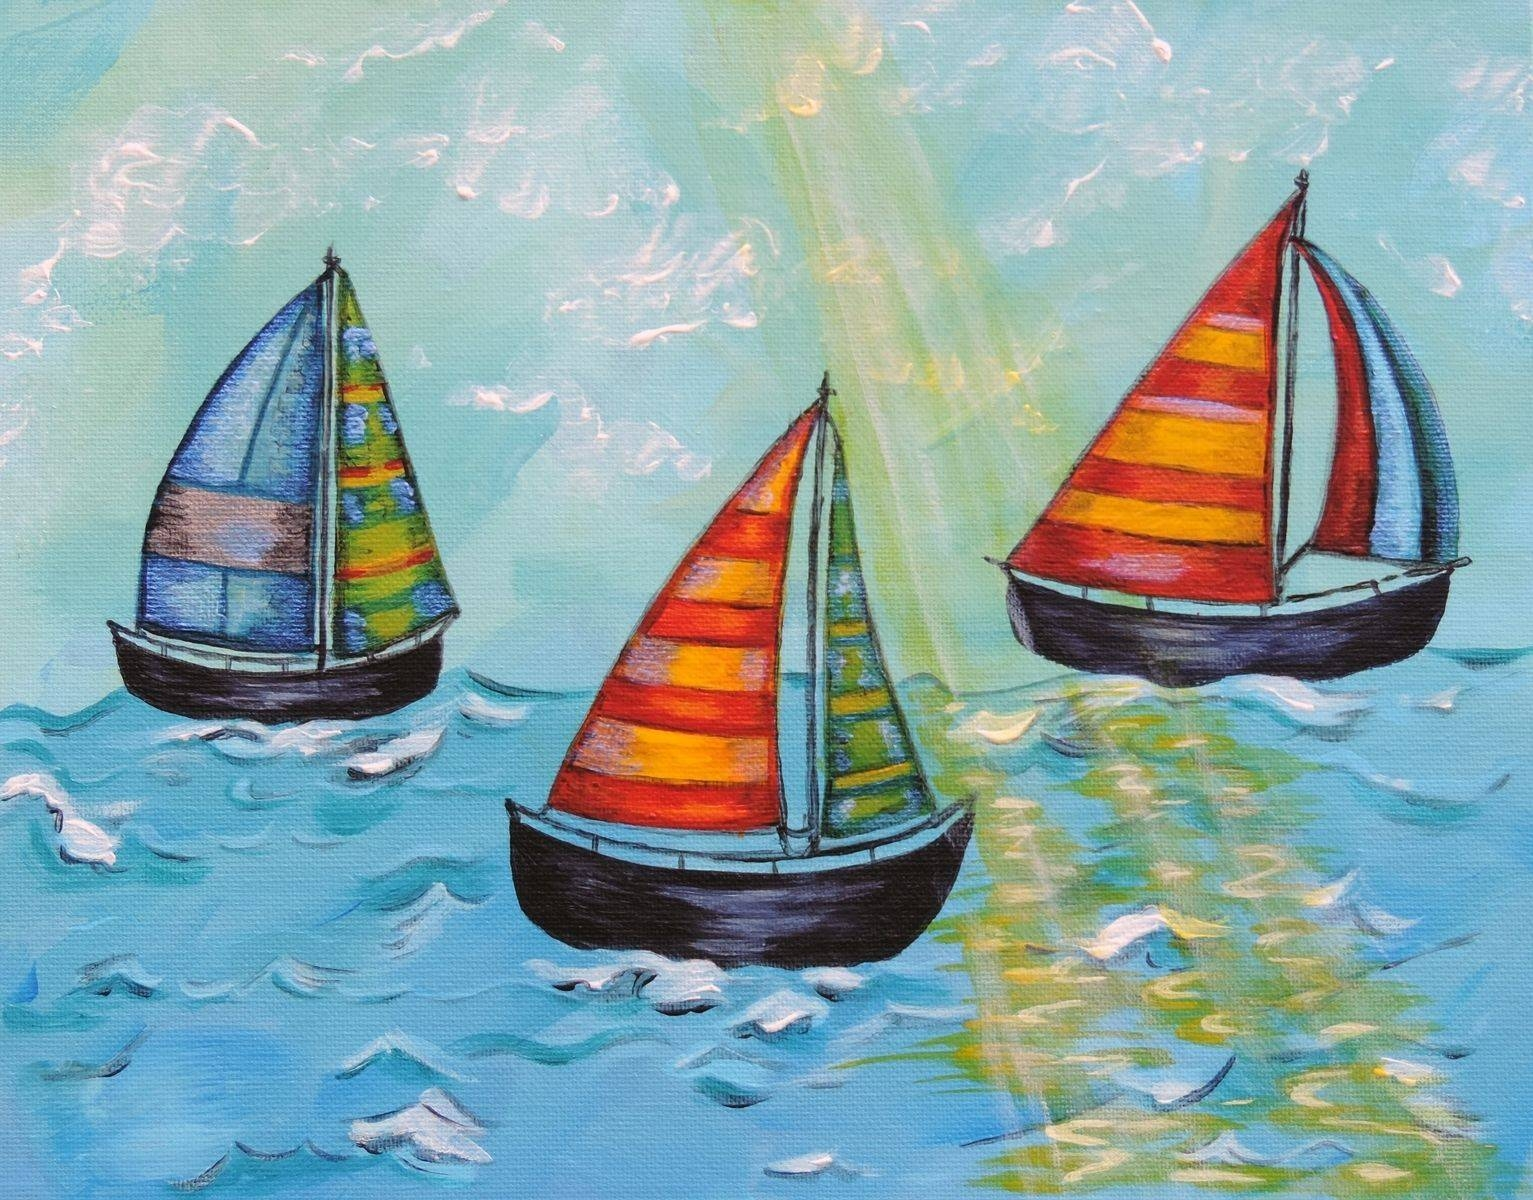 Hand Crafted Sail Boats, Child Or Nursery Art / Kids Wall Art In Most Up To Date Boat Wall Art (View 8 of 20)